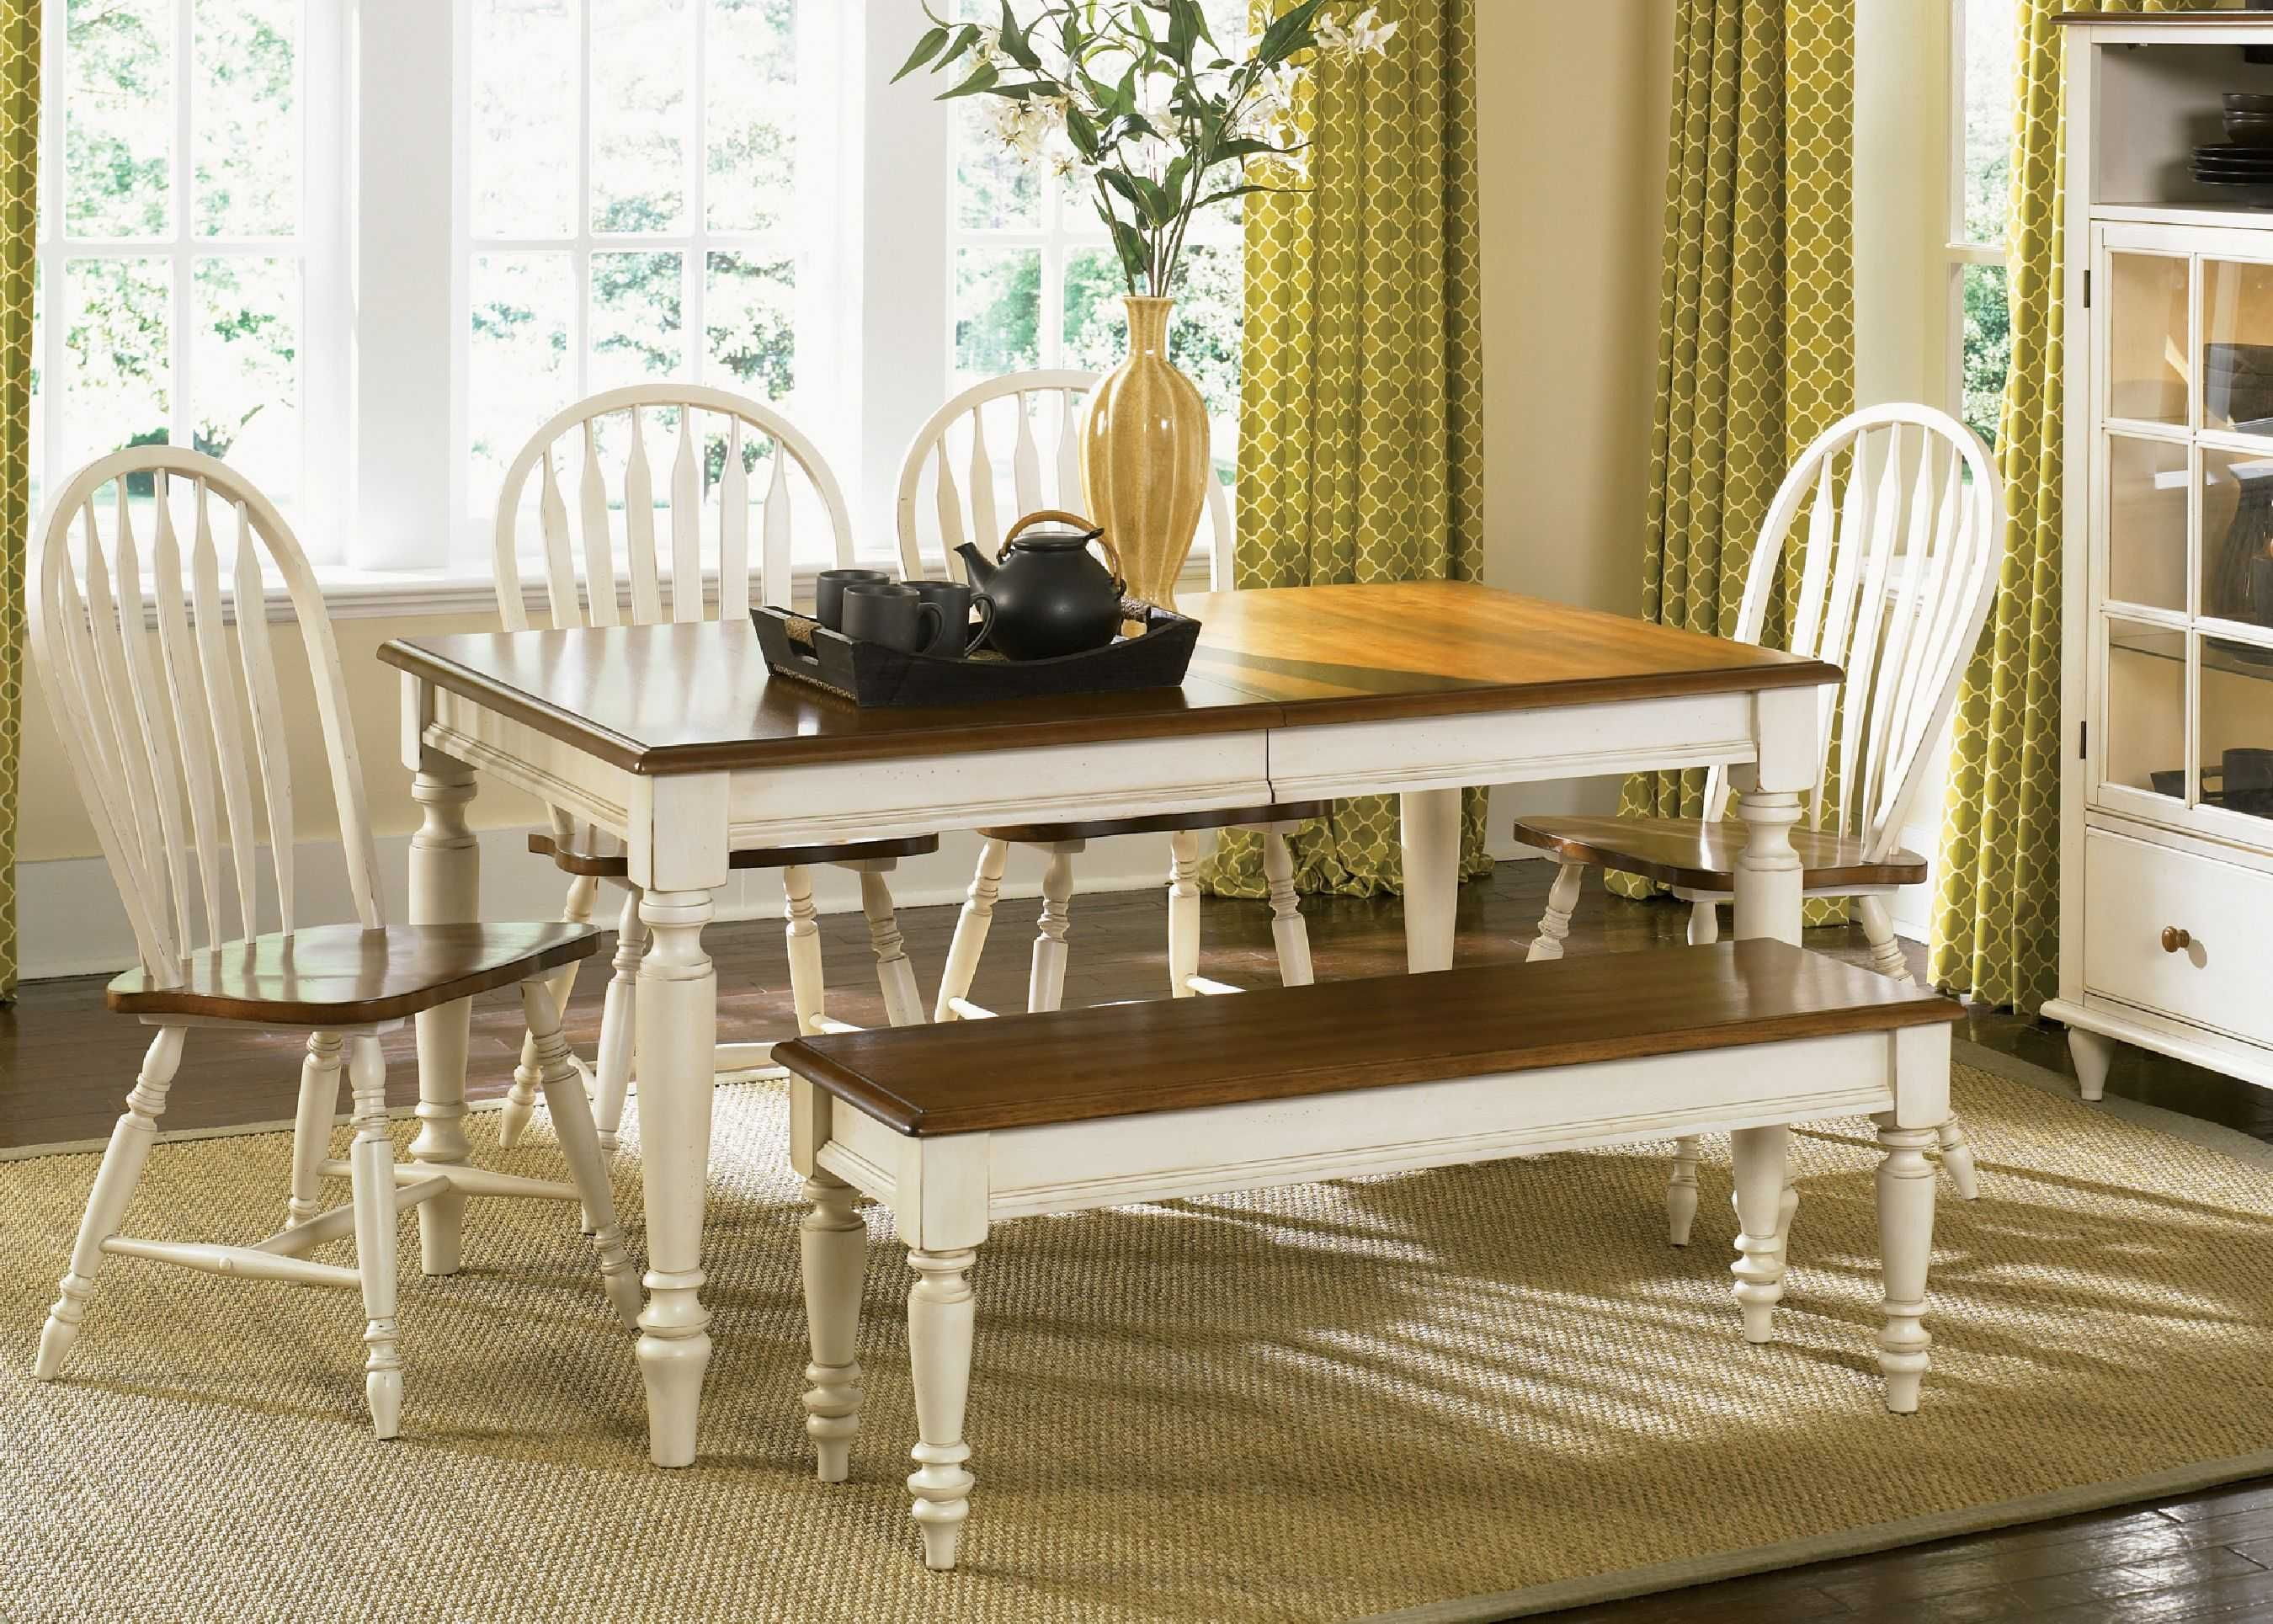 Superior Elegant Elegant Country Style Dining Room Wooden Dining Room Table With Andu2026